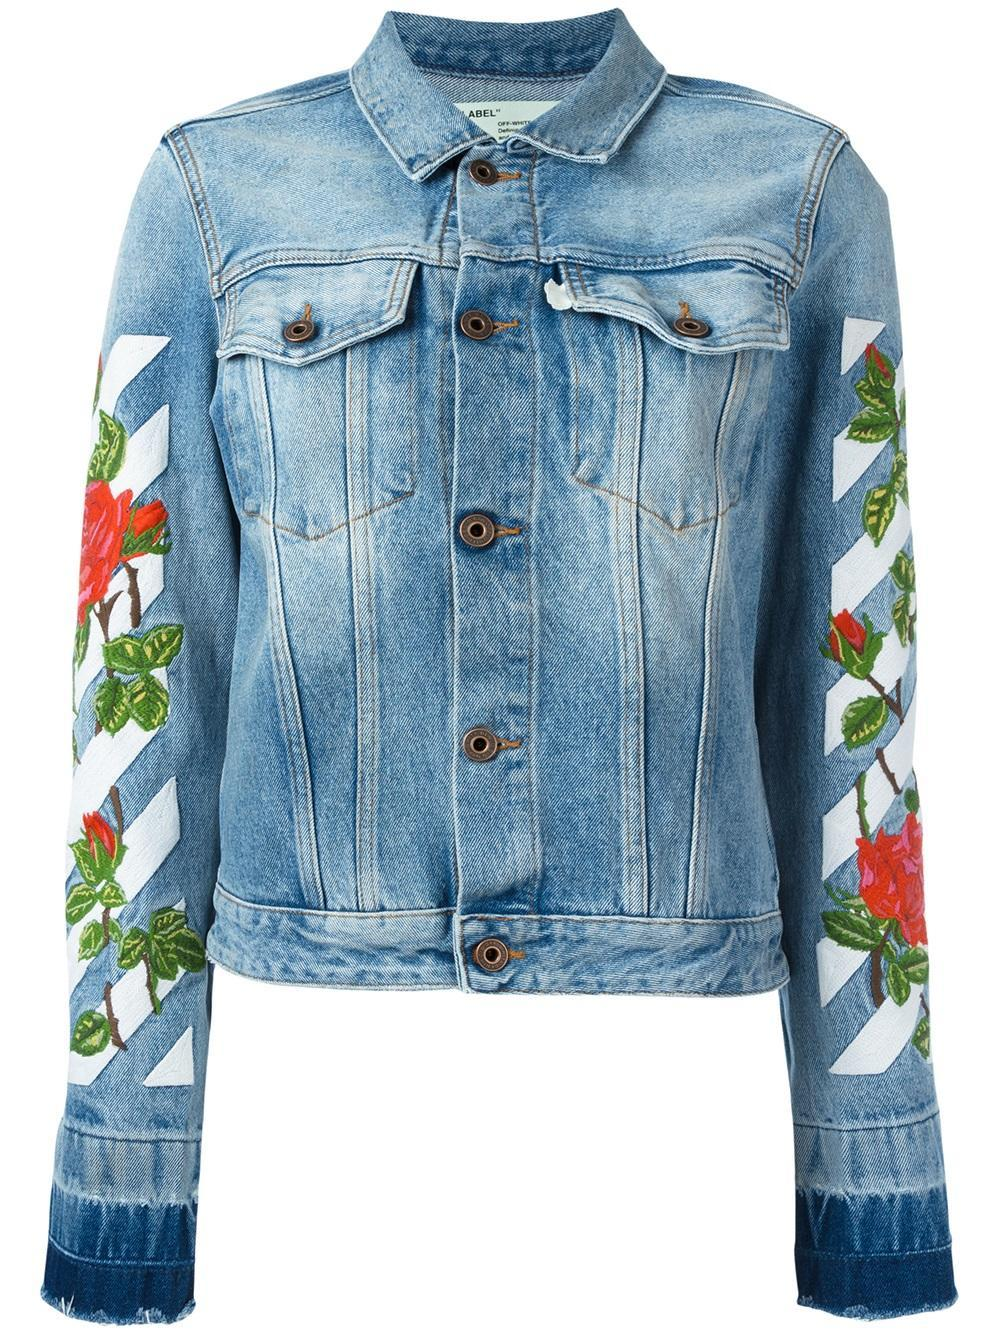 Off white c o virgil abloh roses embroidery denim jacket